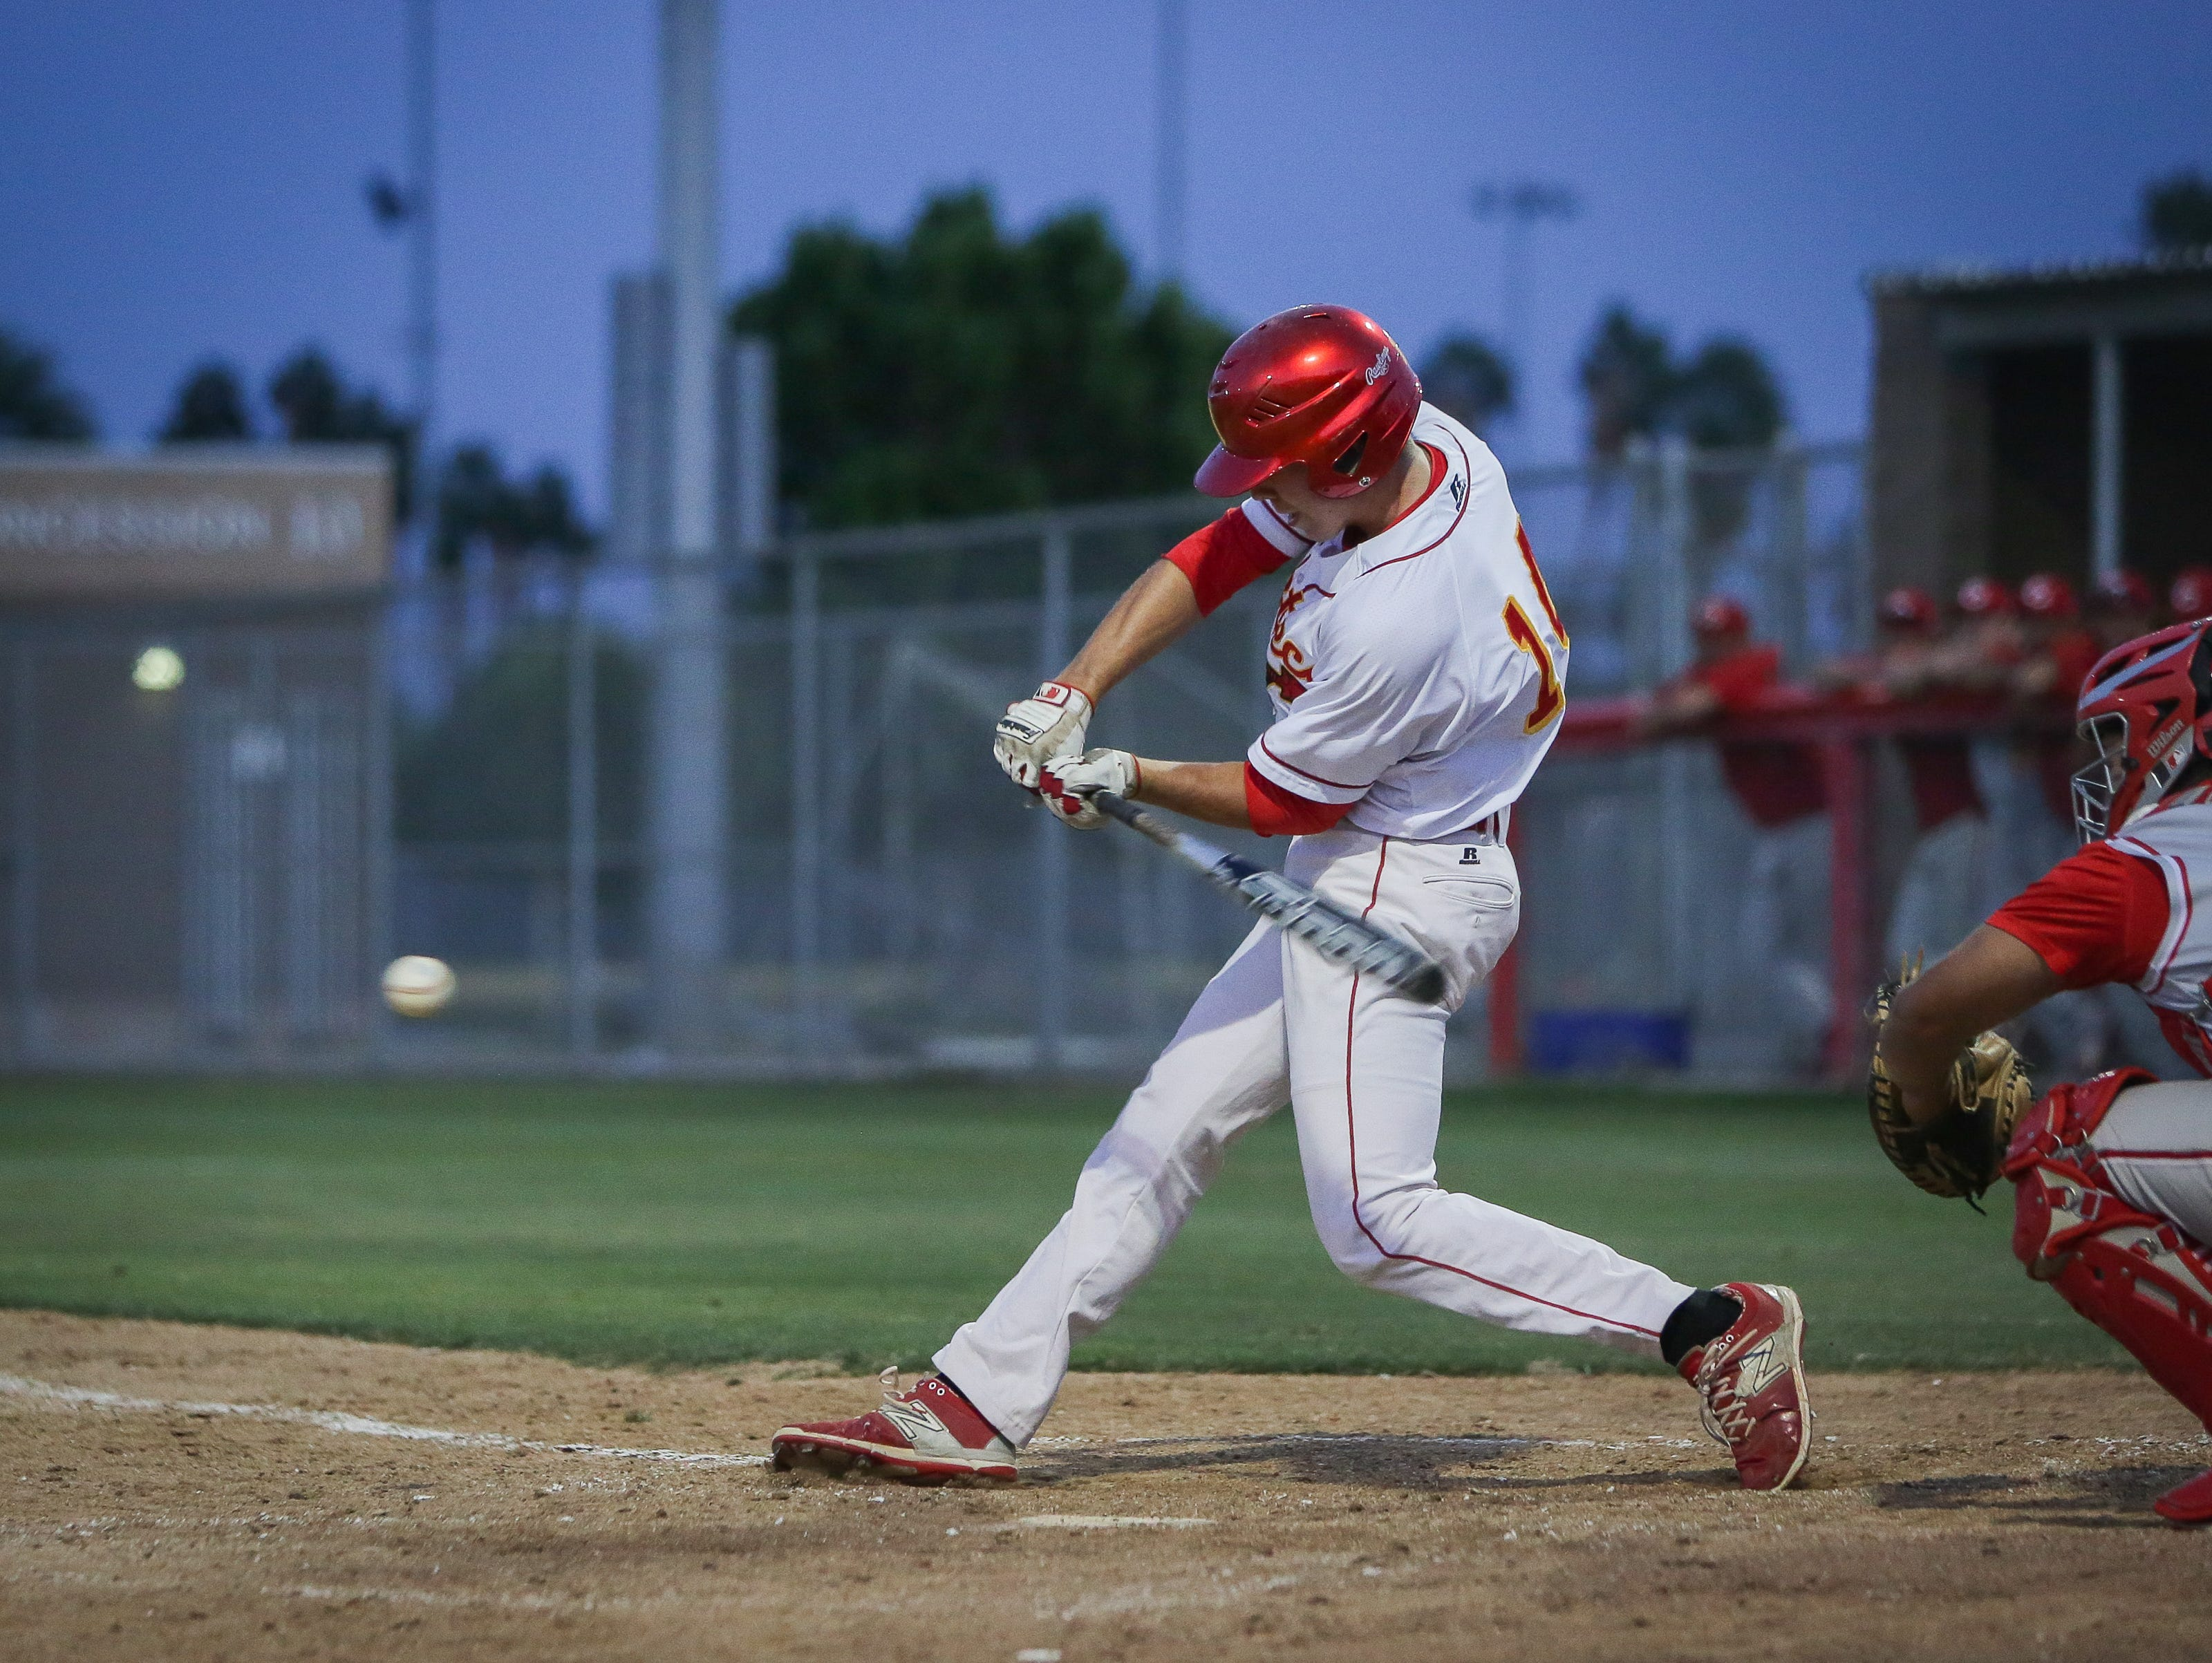 Max Puls hitting the ball in Palm Desert's 5-0 loss to Corona.